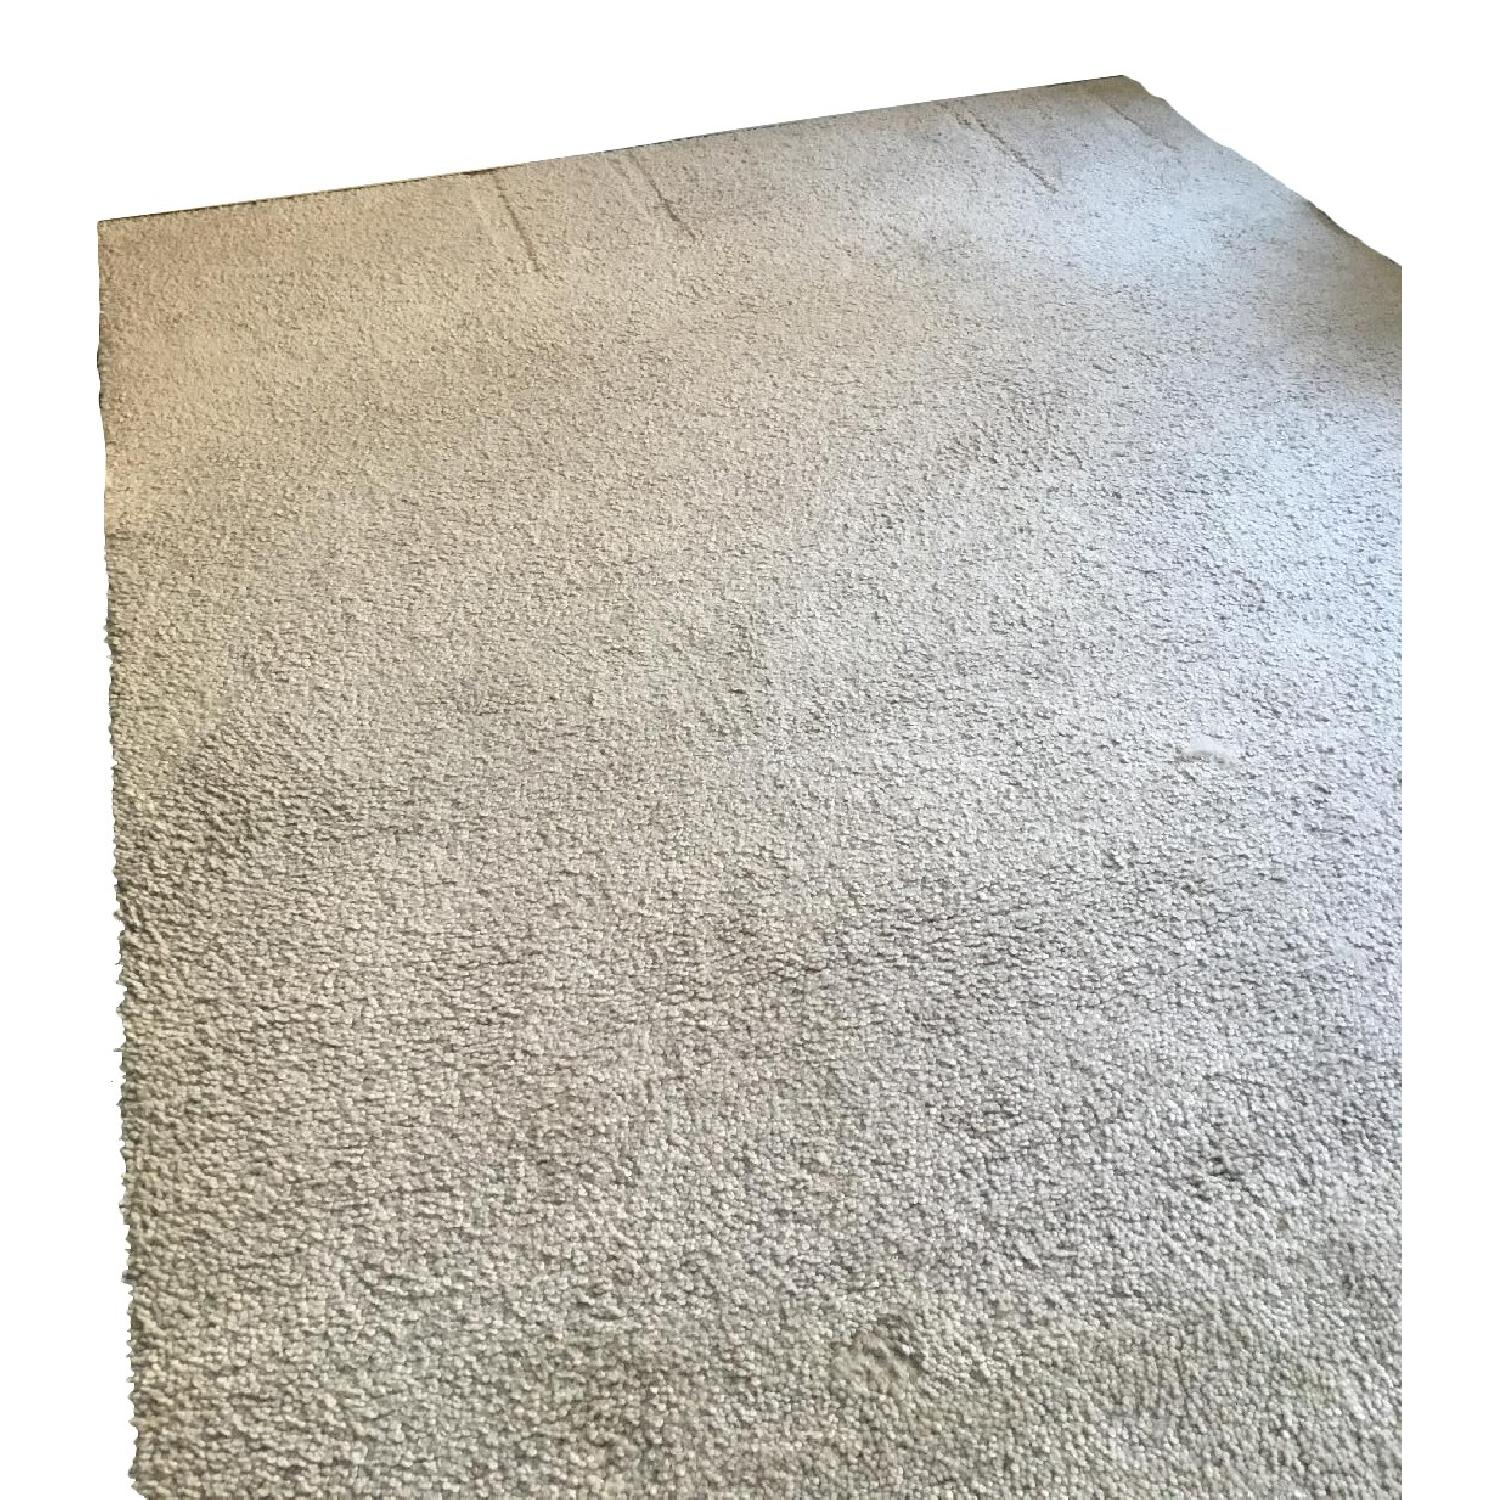 Crate & Barrel Felted Wool Area Rug